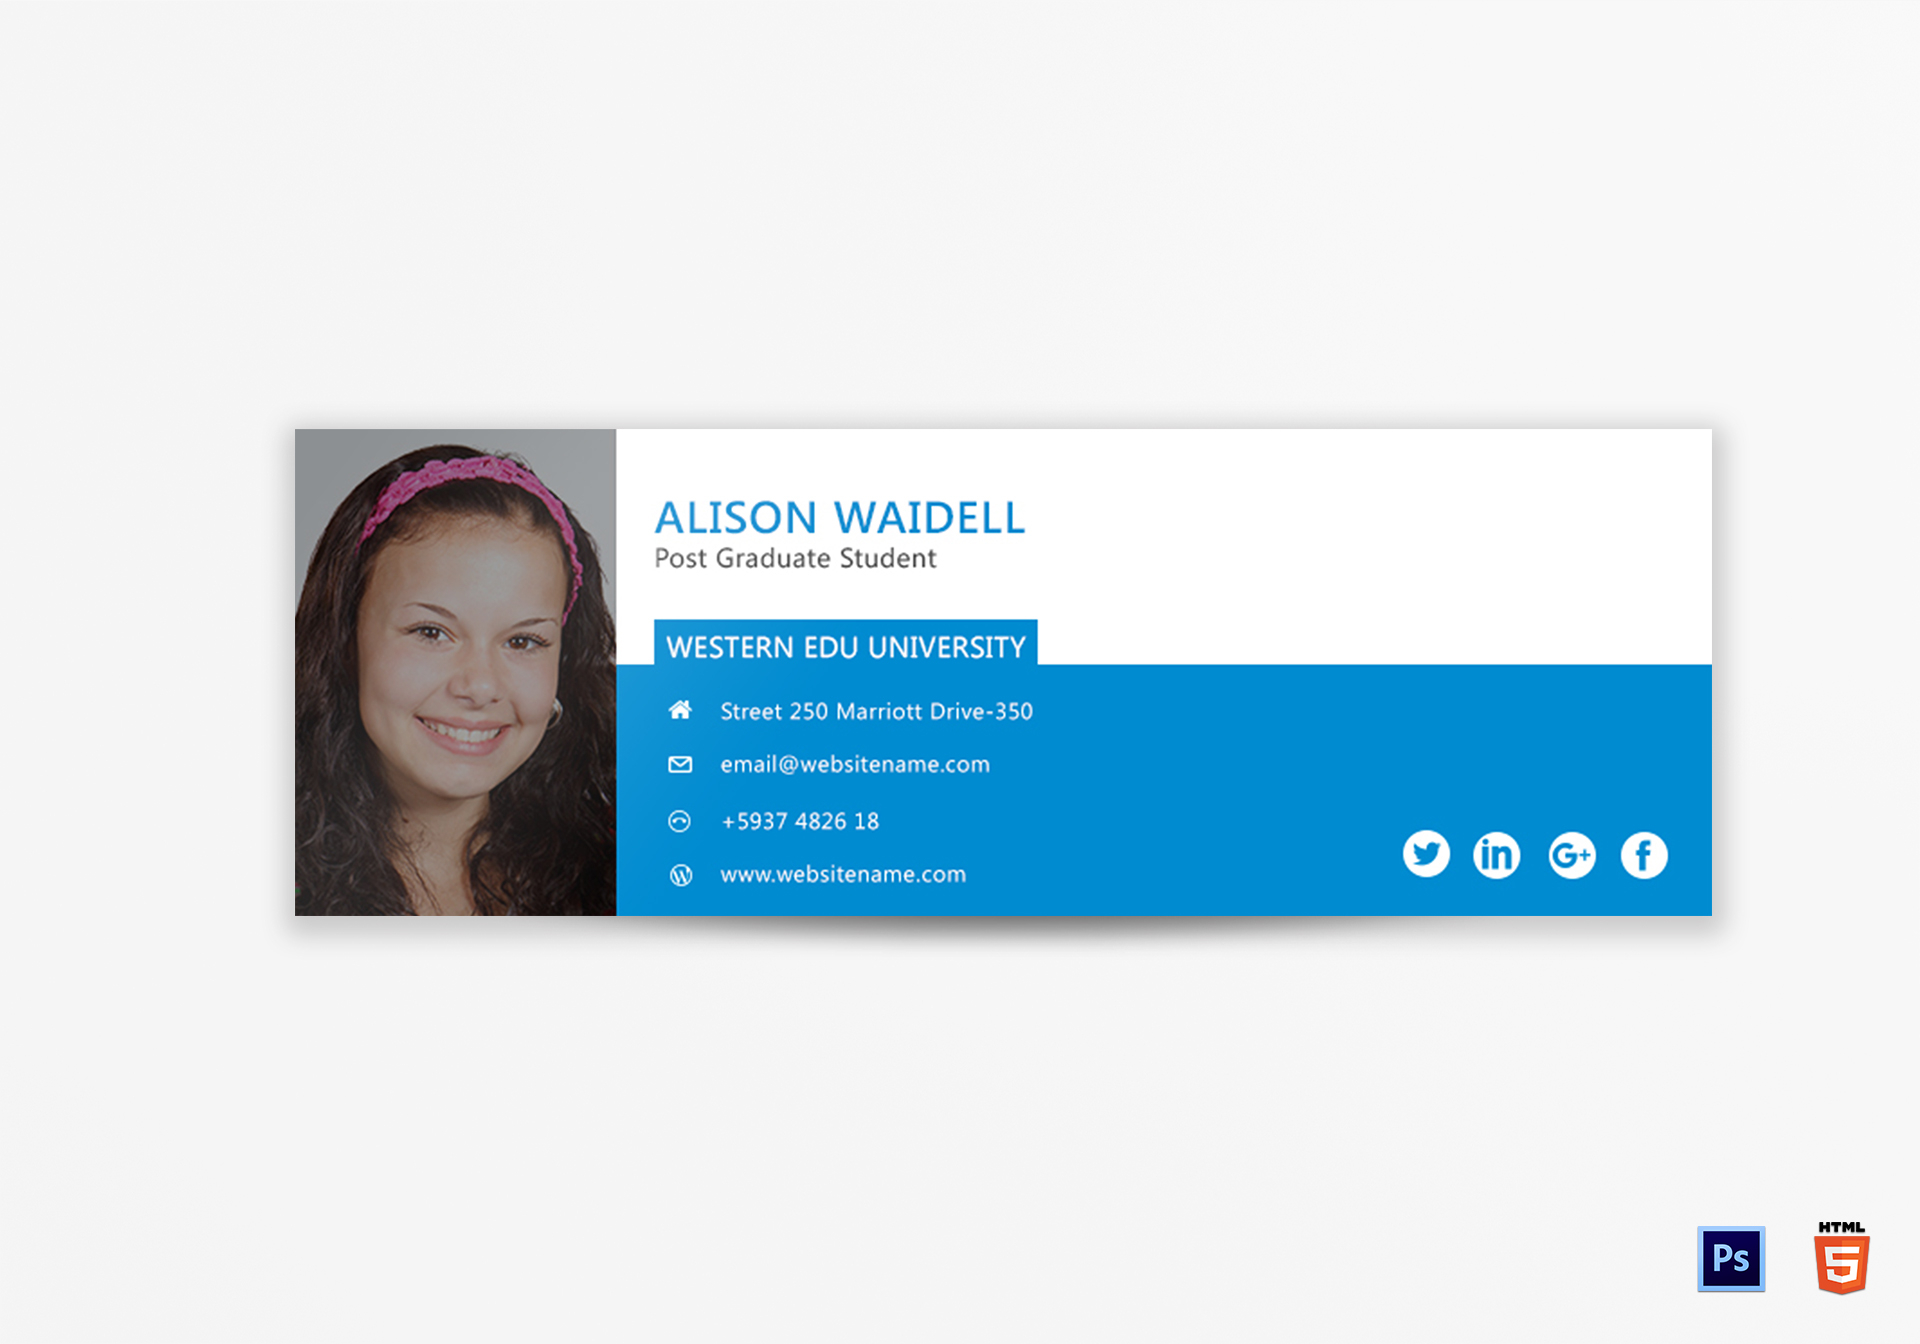 Postgraduate Student Email Signature Design Template in PSD, HTML